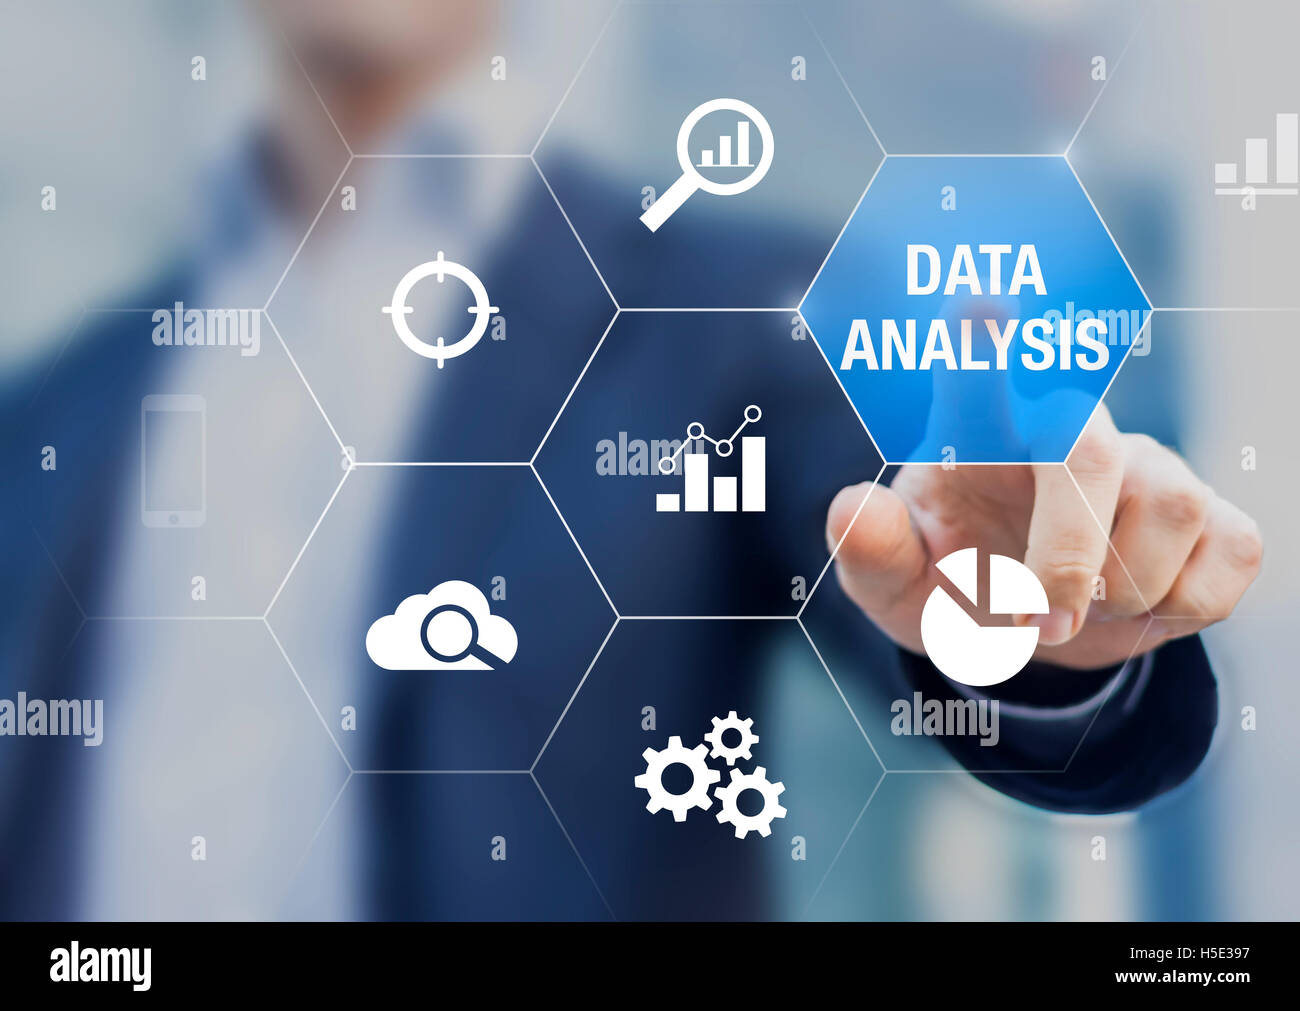 Consultant showing data analysis concept on screen with charts for business intelligence and strategy - Stock Image